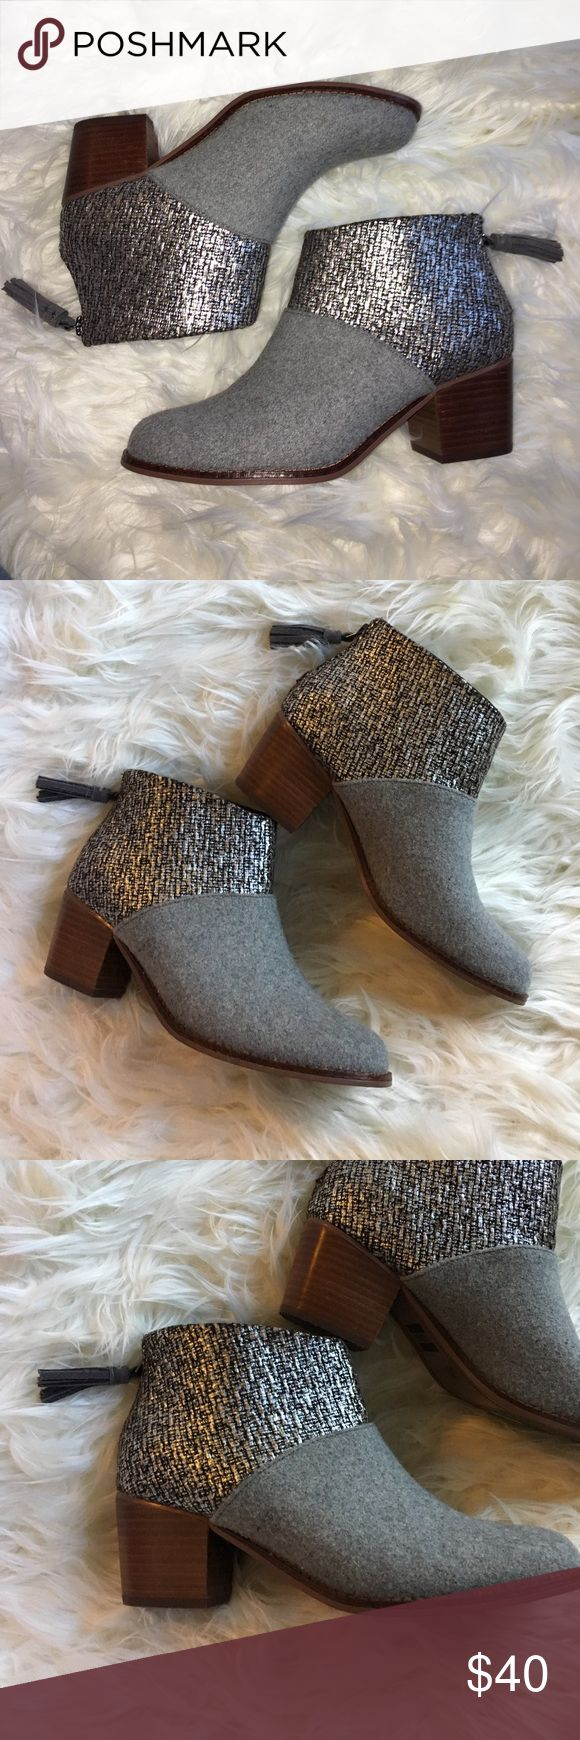 TOMS gray and metallic silver zip up booties These cuties are like new. Perfect with boyfriend Jeans and a tee! Comfy and stylish. ✨ Offers Welcome ✨ TOMS Shoes Ankle Boots & Booties